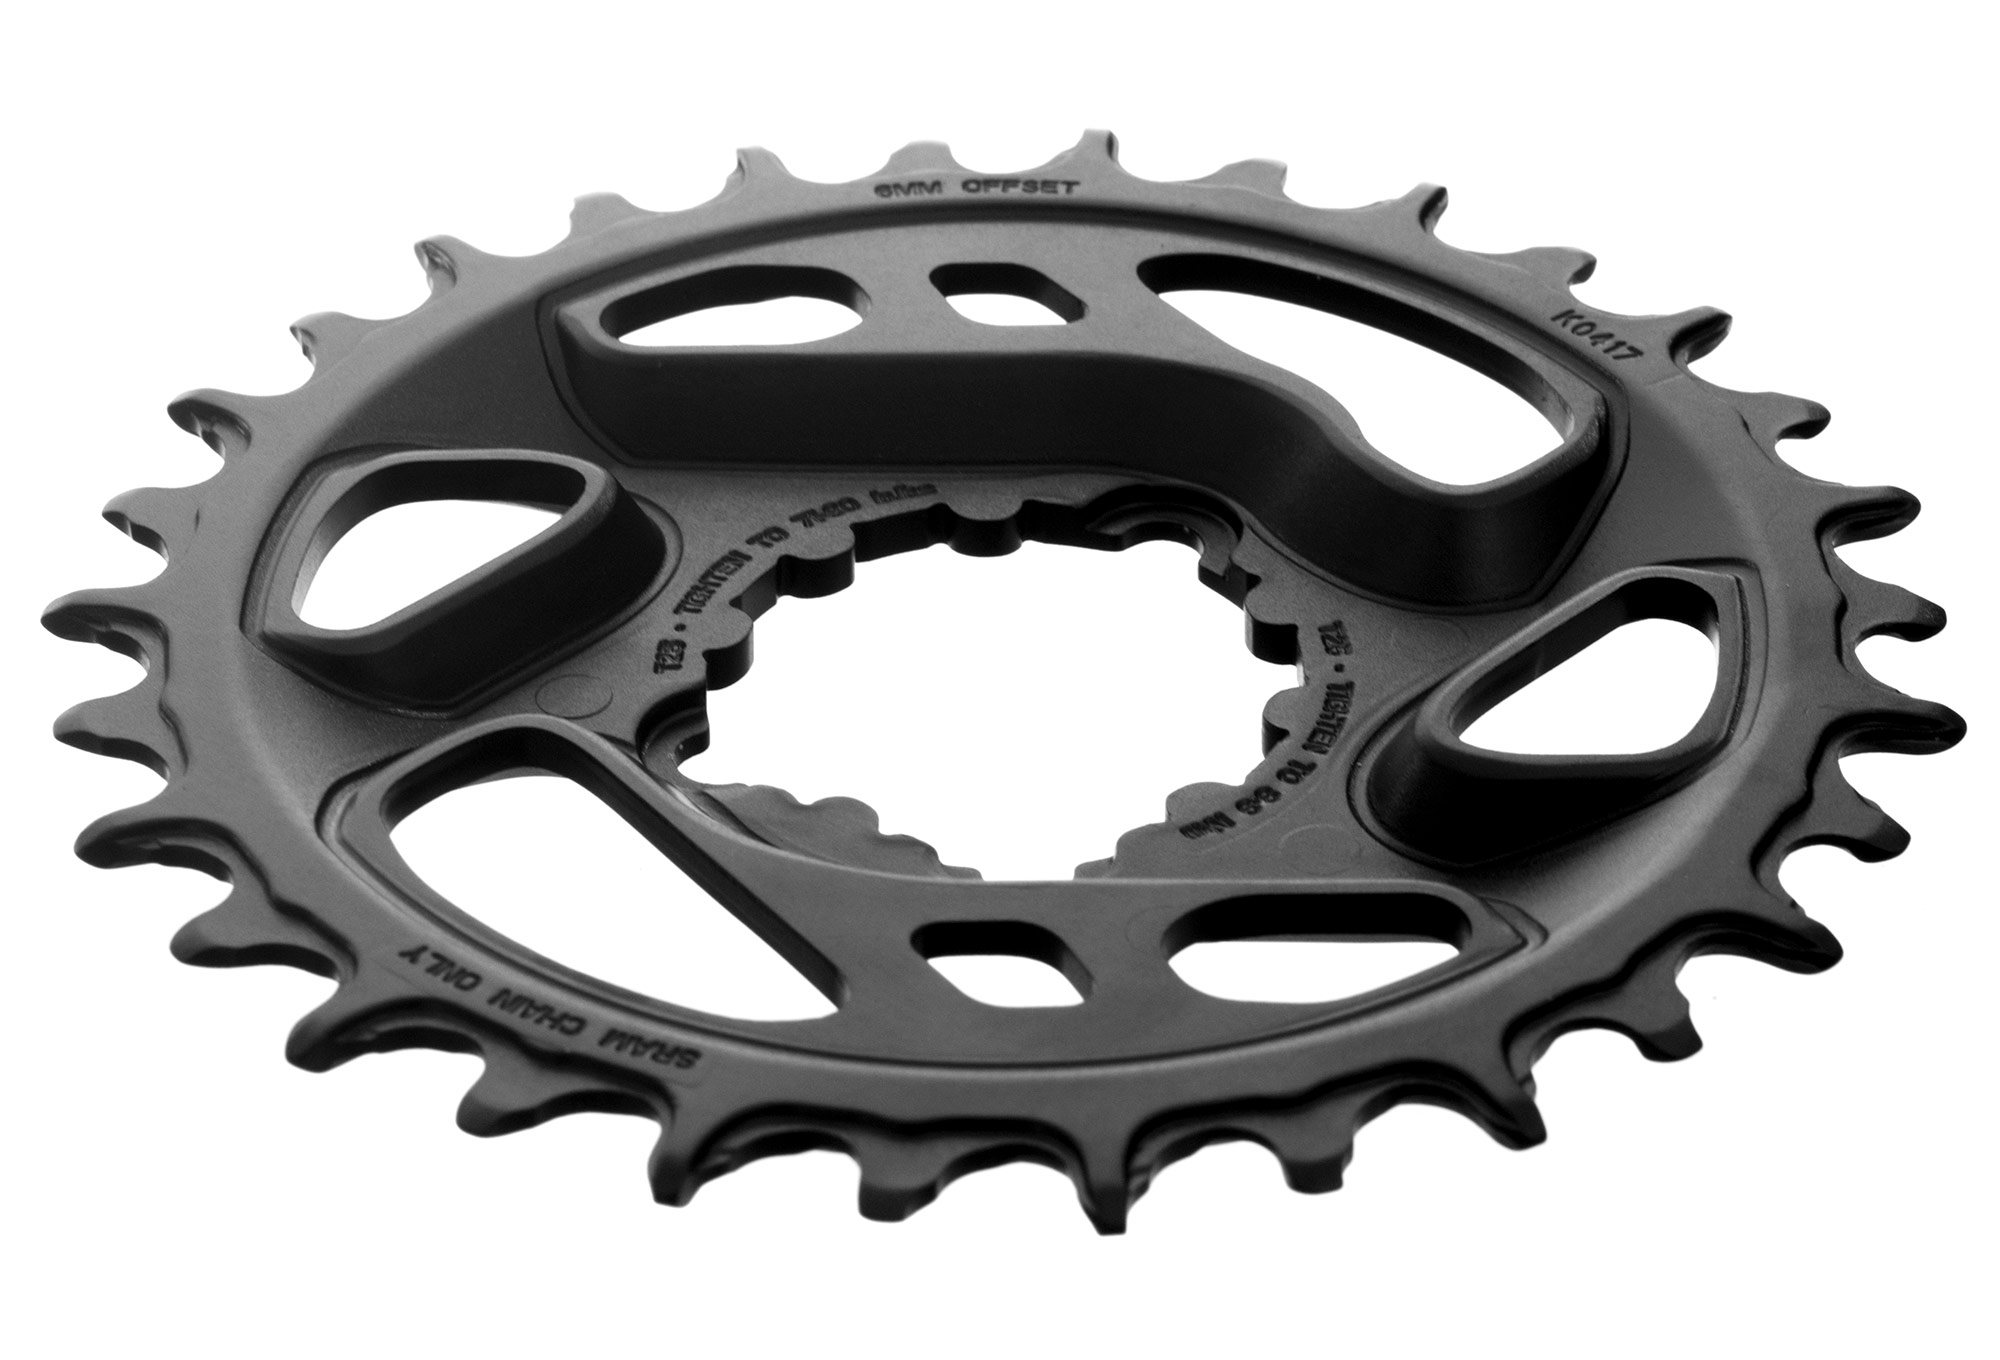 SRAM X-Sync Chainring 11 Speed 34T 6mm Offset Direct Mount